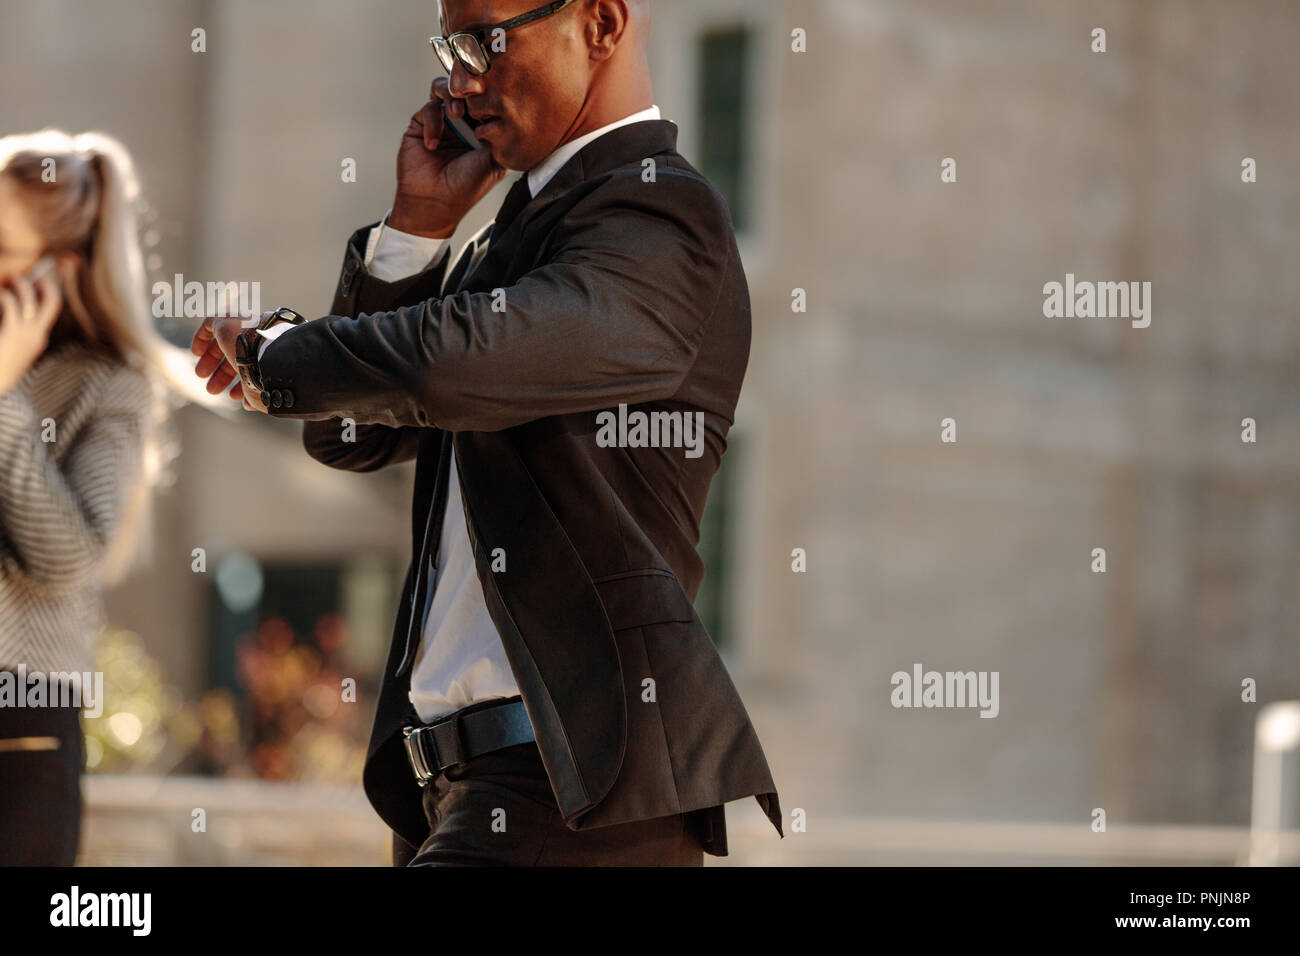 Man looking at his wrist watch and talking over mobile phone while commuting to office in the morning. Businessman checking time while walking to offi - Stock Image